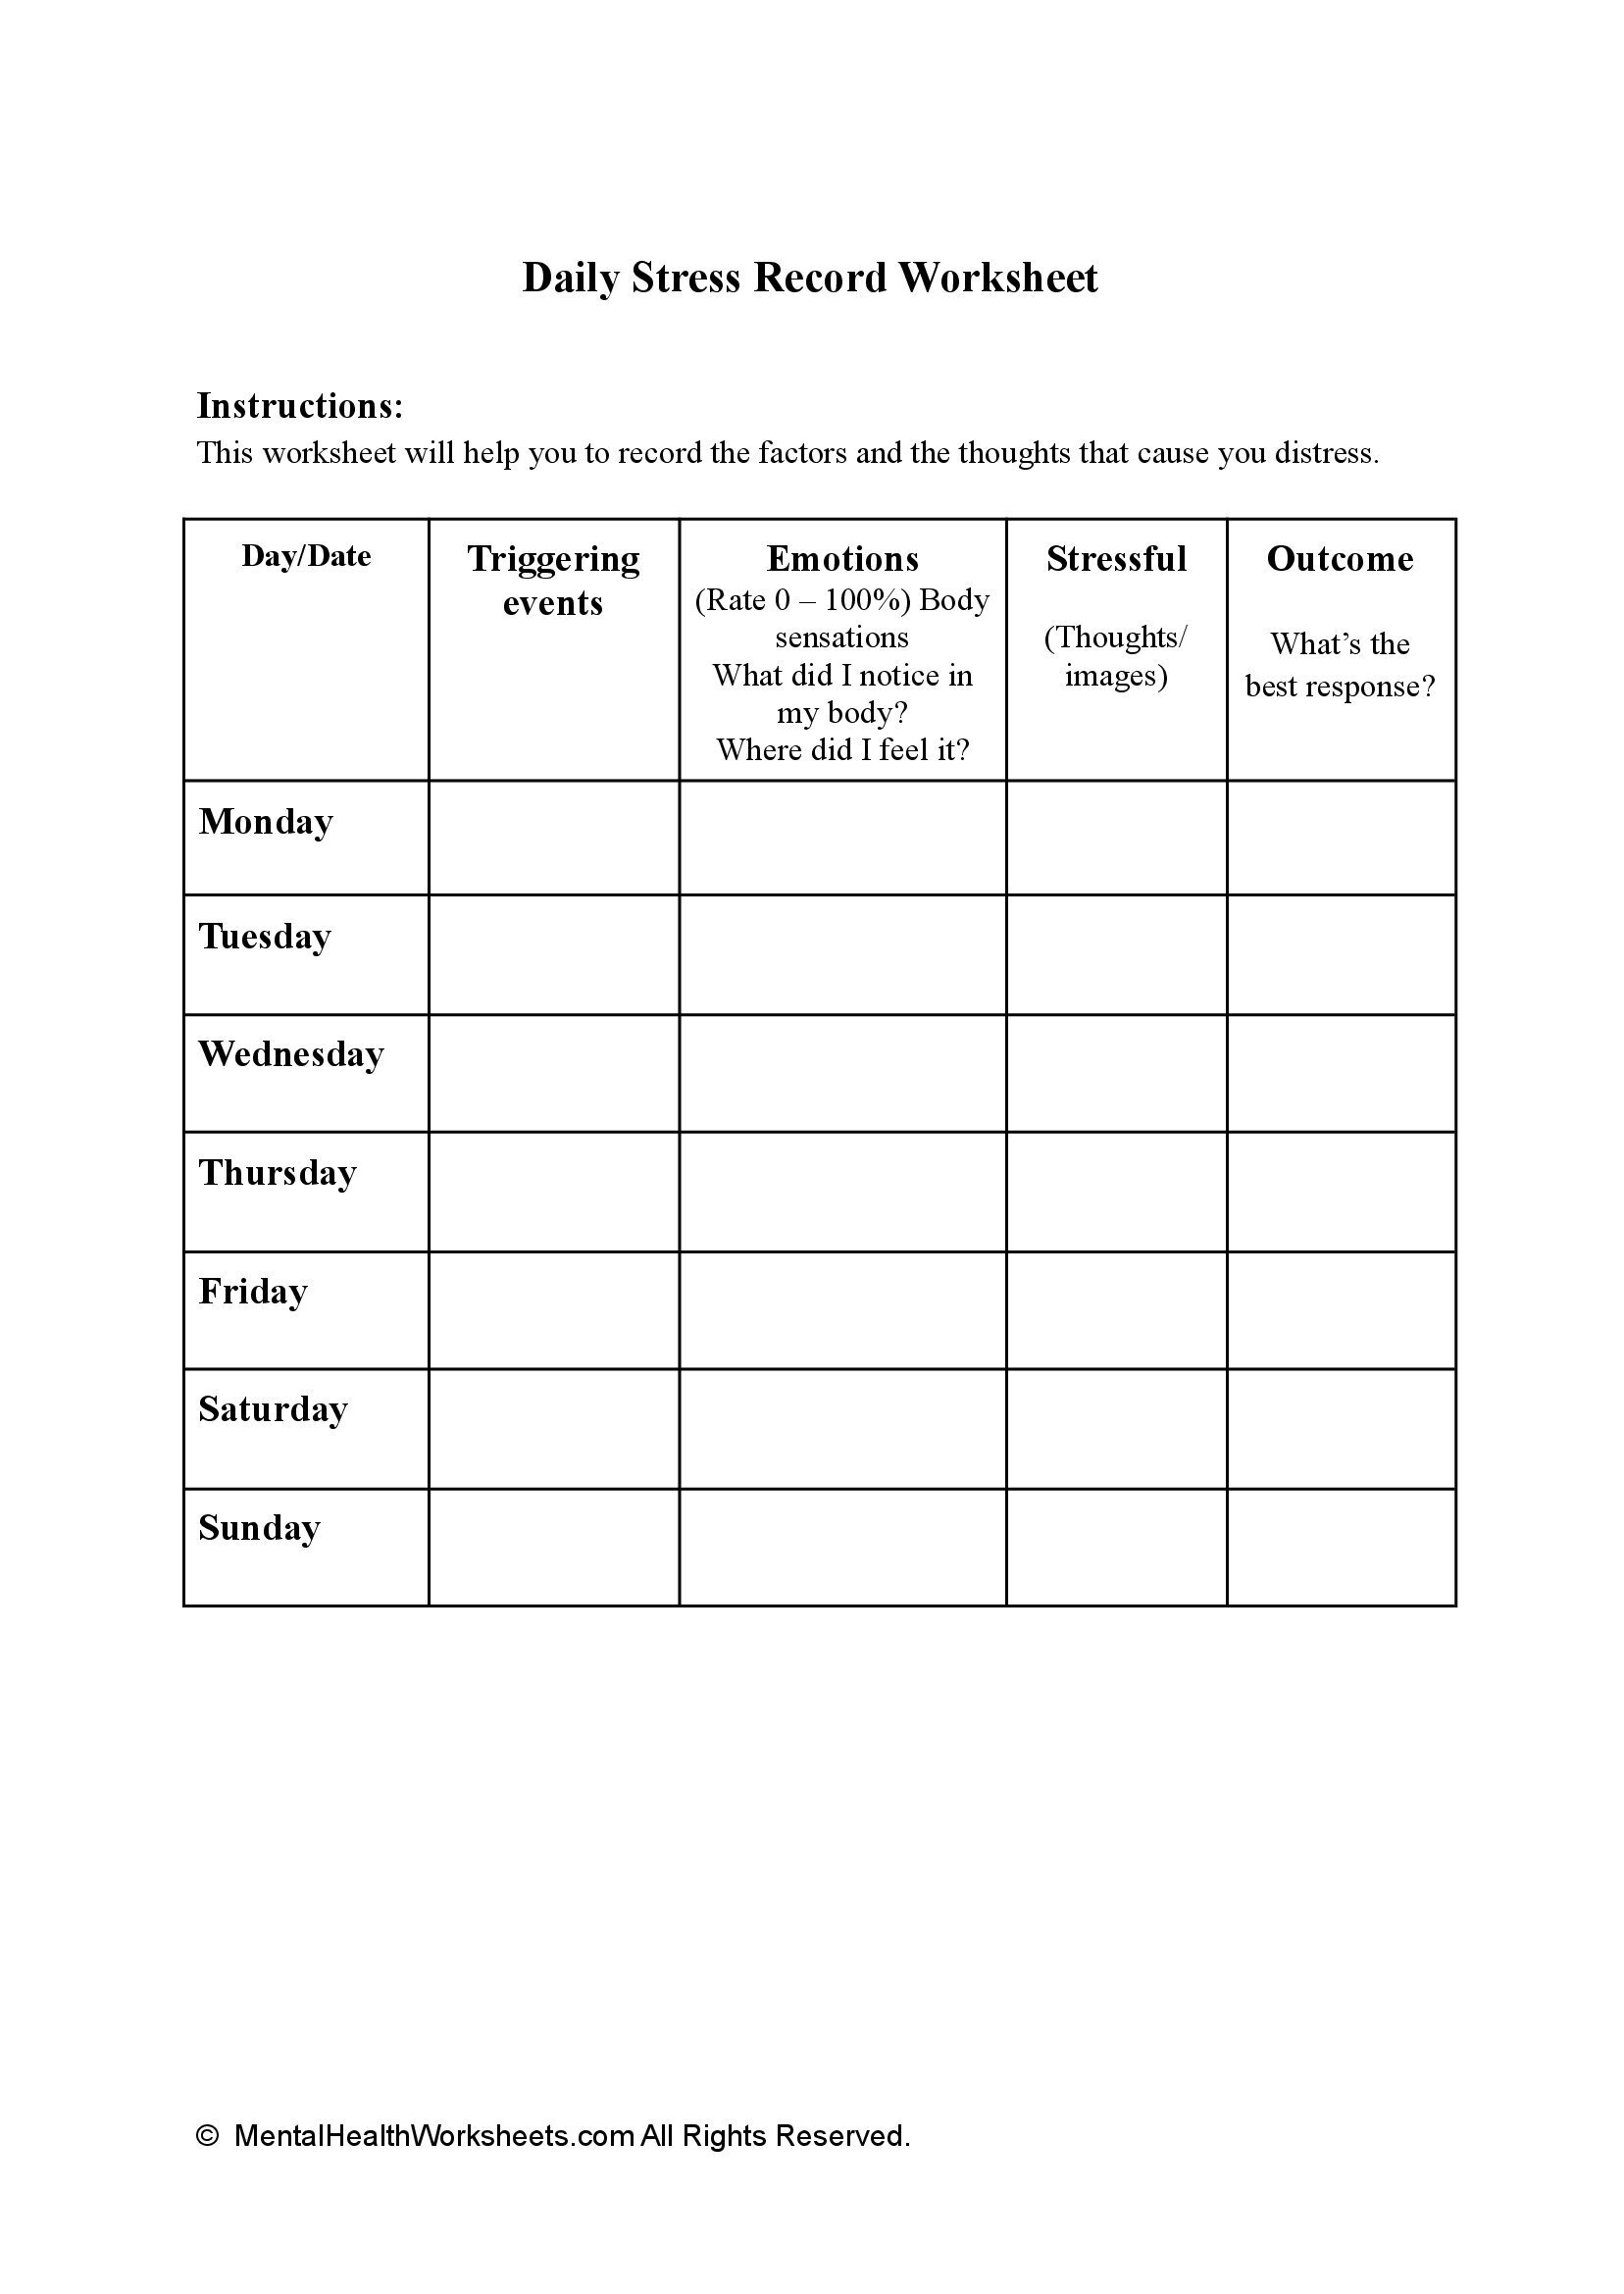 Daily Stress Record Worksheet